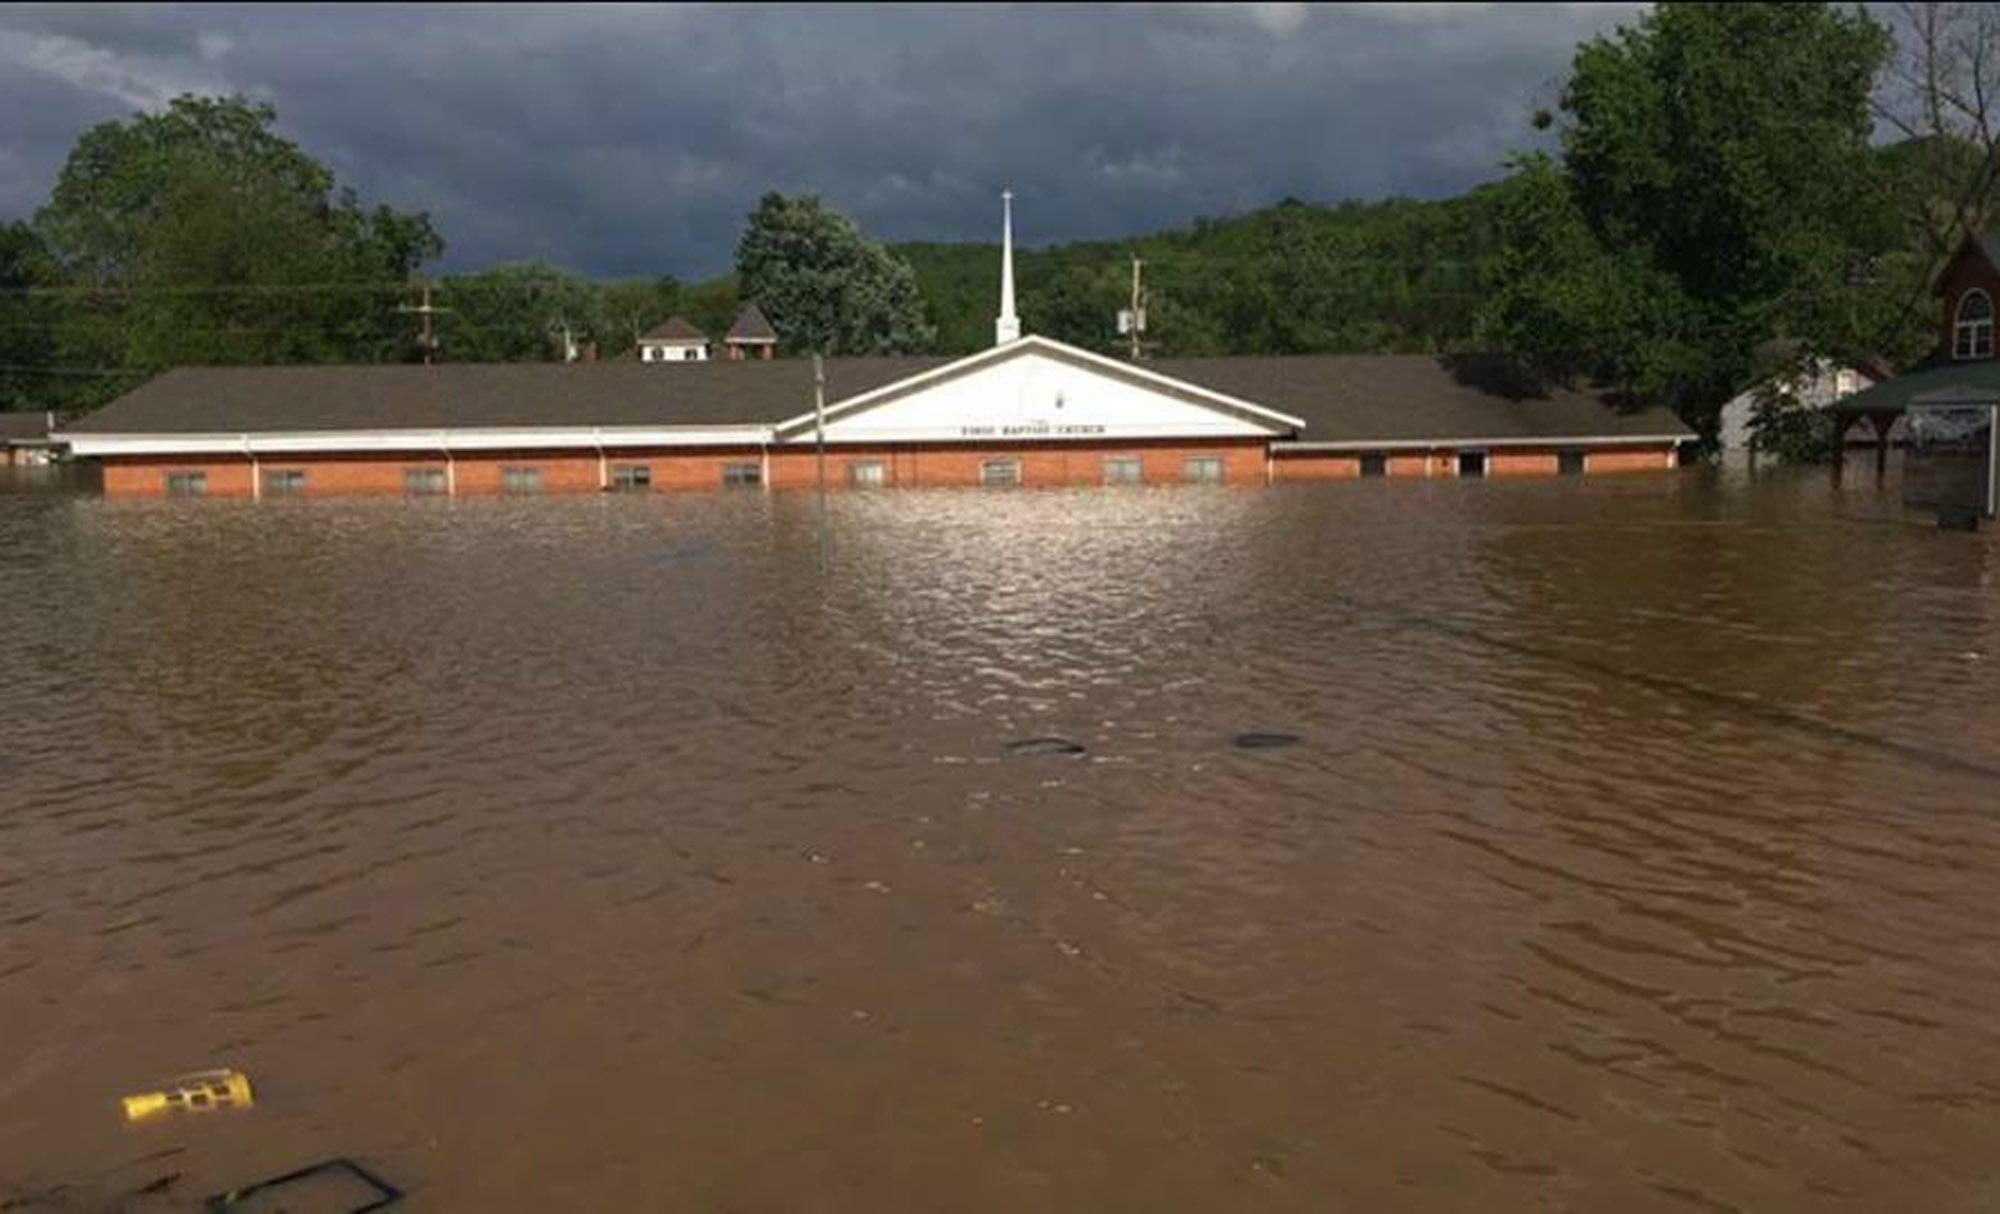 First Baptist Church in Van Buren, Mo., was one of several churches in Missouri and Arkansas, along with a Baptist campground affected by recent Midwest flooding. (Baptist Press)